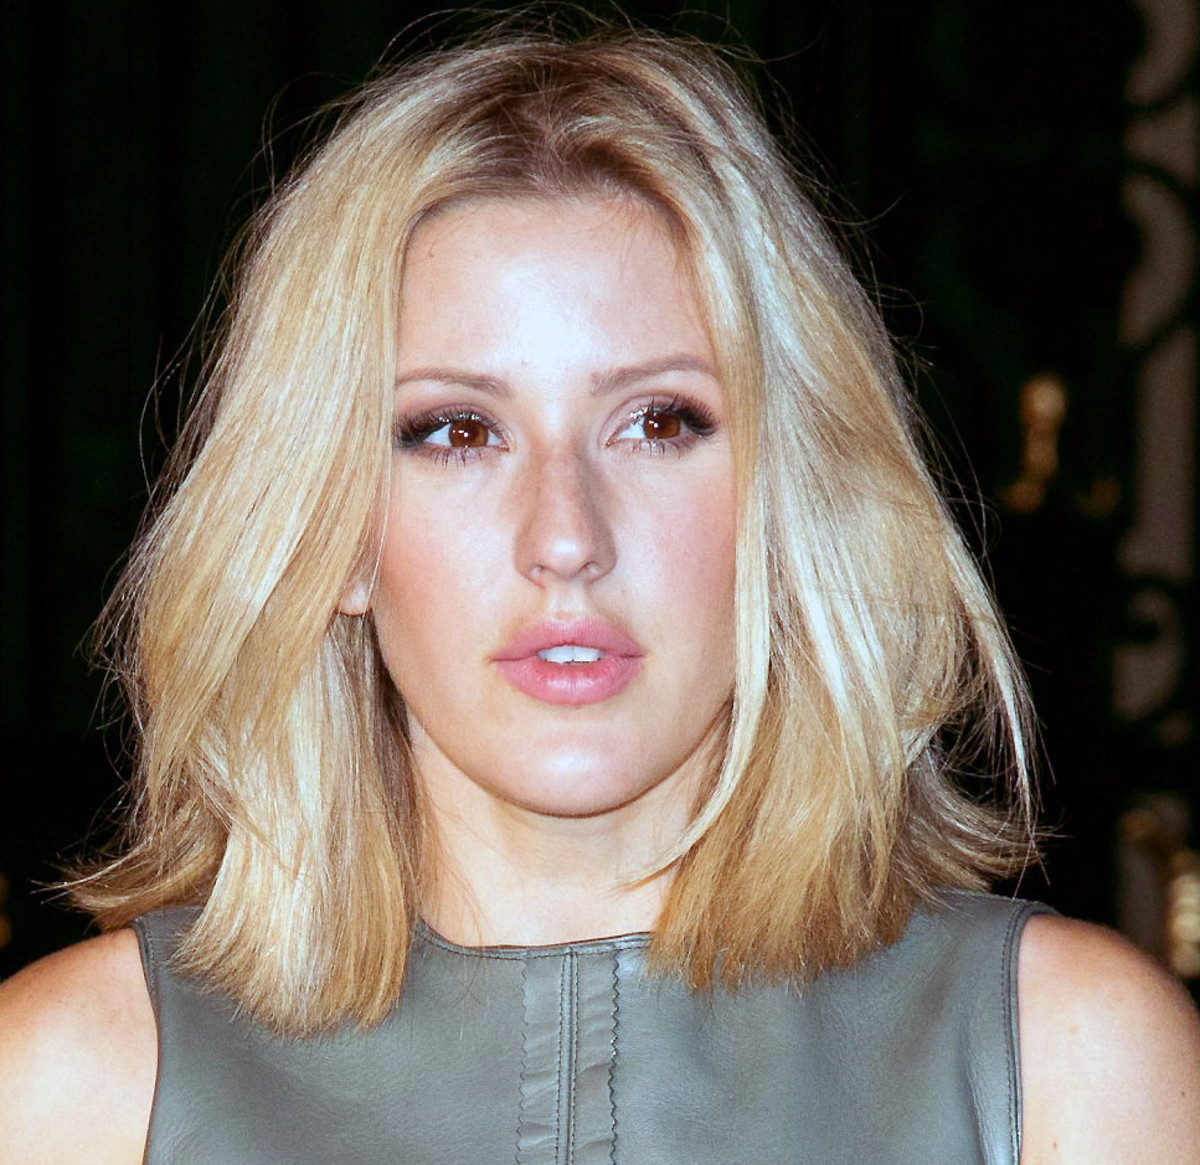 mac ellie goulding_ellie at a burberry event 2015